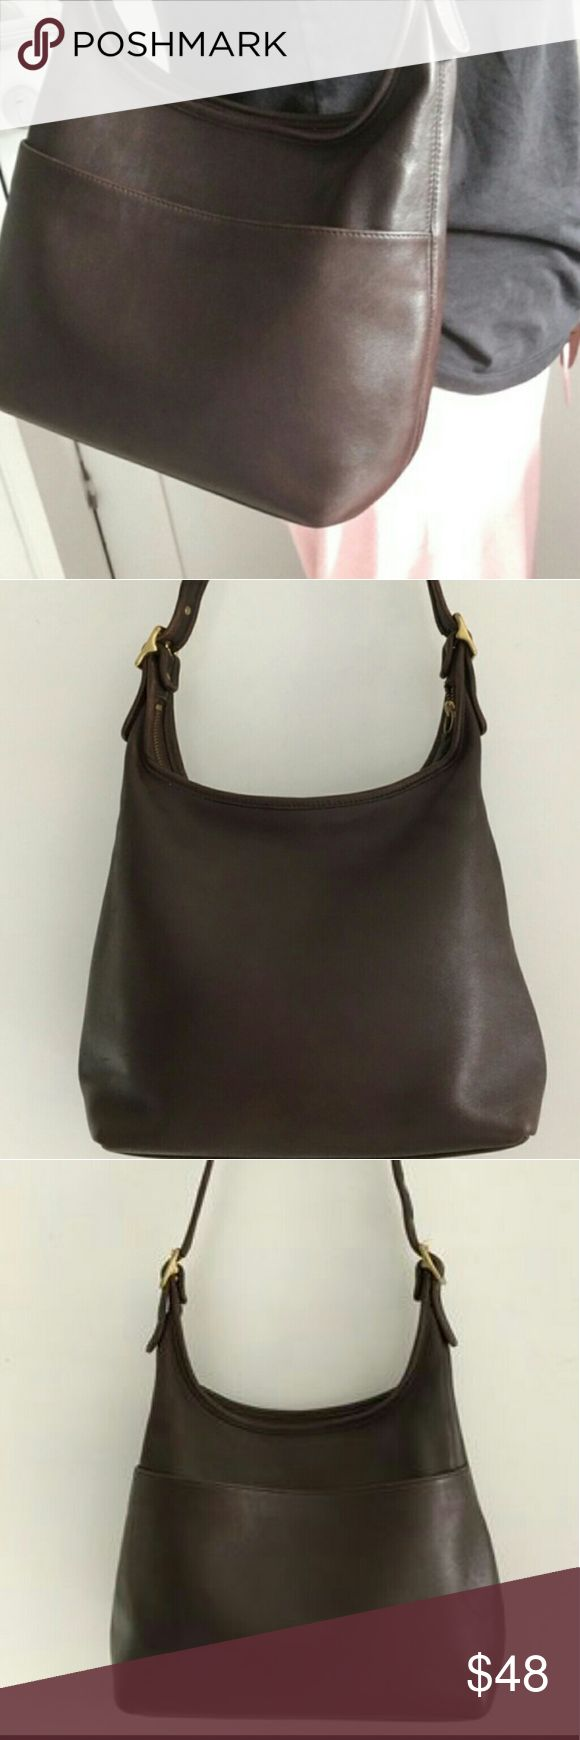 "Vintage Coach Legacy Brown Shoulder Bag made in th Vintage Coach Legacy Brown Shoulder Bag Adjustable strap 23"" inches. 13"" wide and 12"" tall approximately. Coach Bags Shoulder Bags"